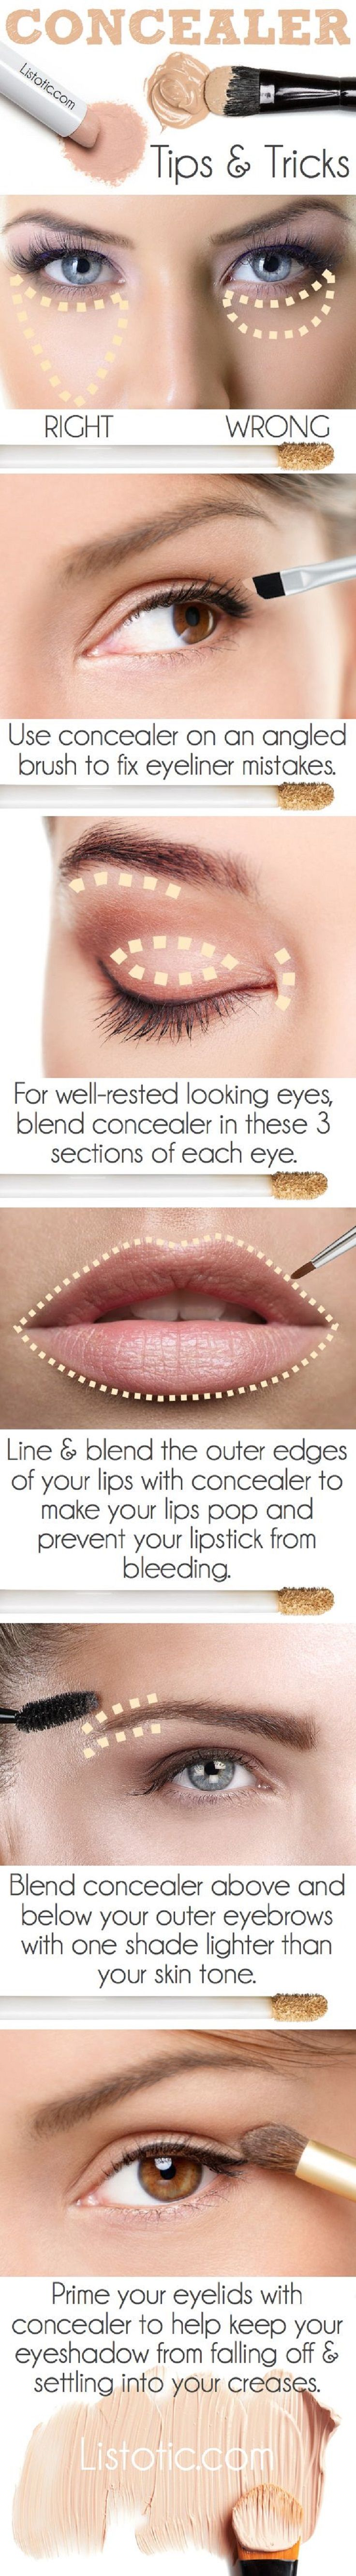 Use Your Concealer The Right Way - 13 Best Makeup Tutorials and Infographics for Beginners #hairstyles #longhairtips